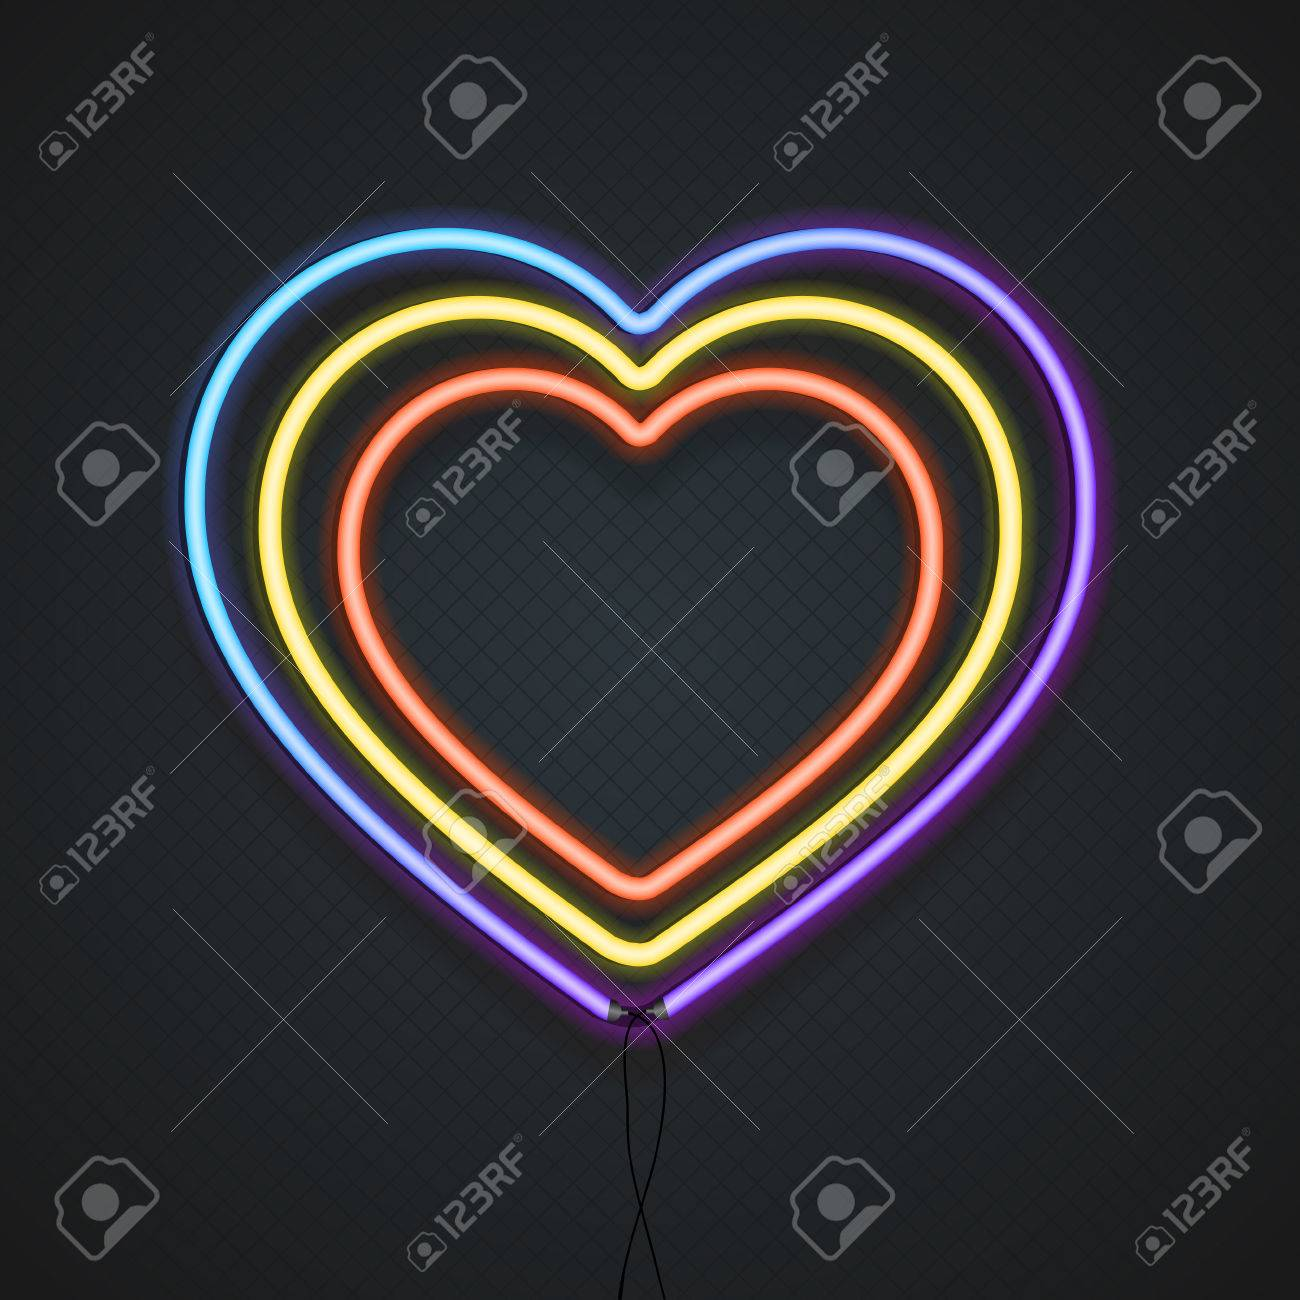 Neon heart a symbol of love vector illustration royalty free a symbol of love vector illustration stock vector 50793000 biocorpaavc Images